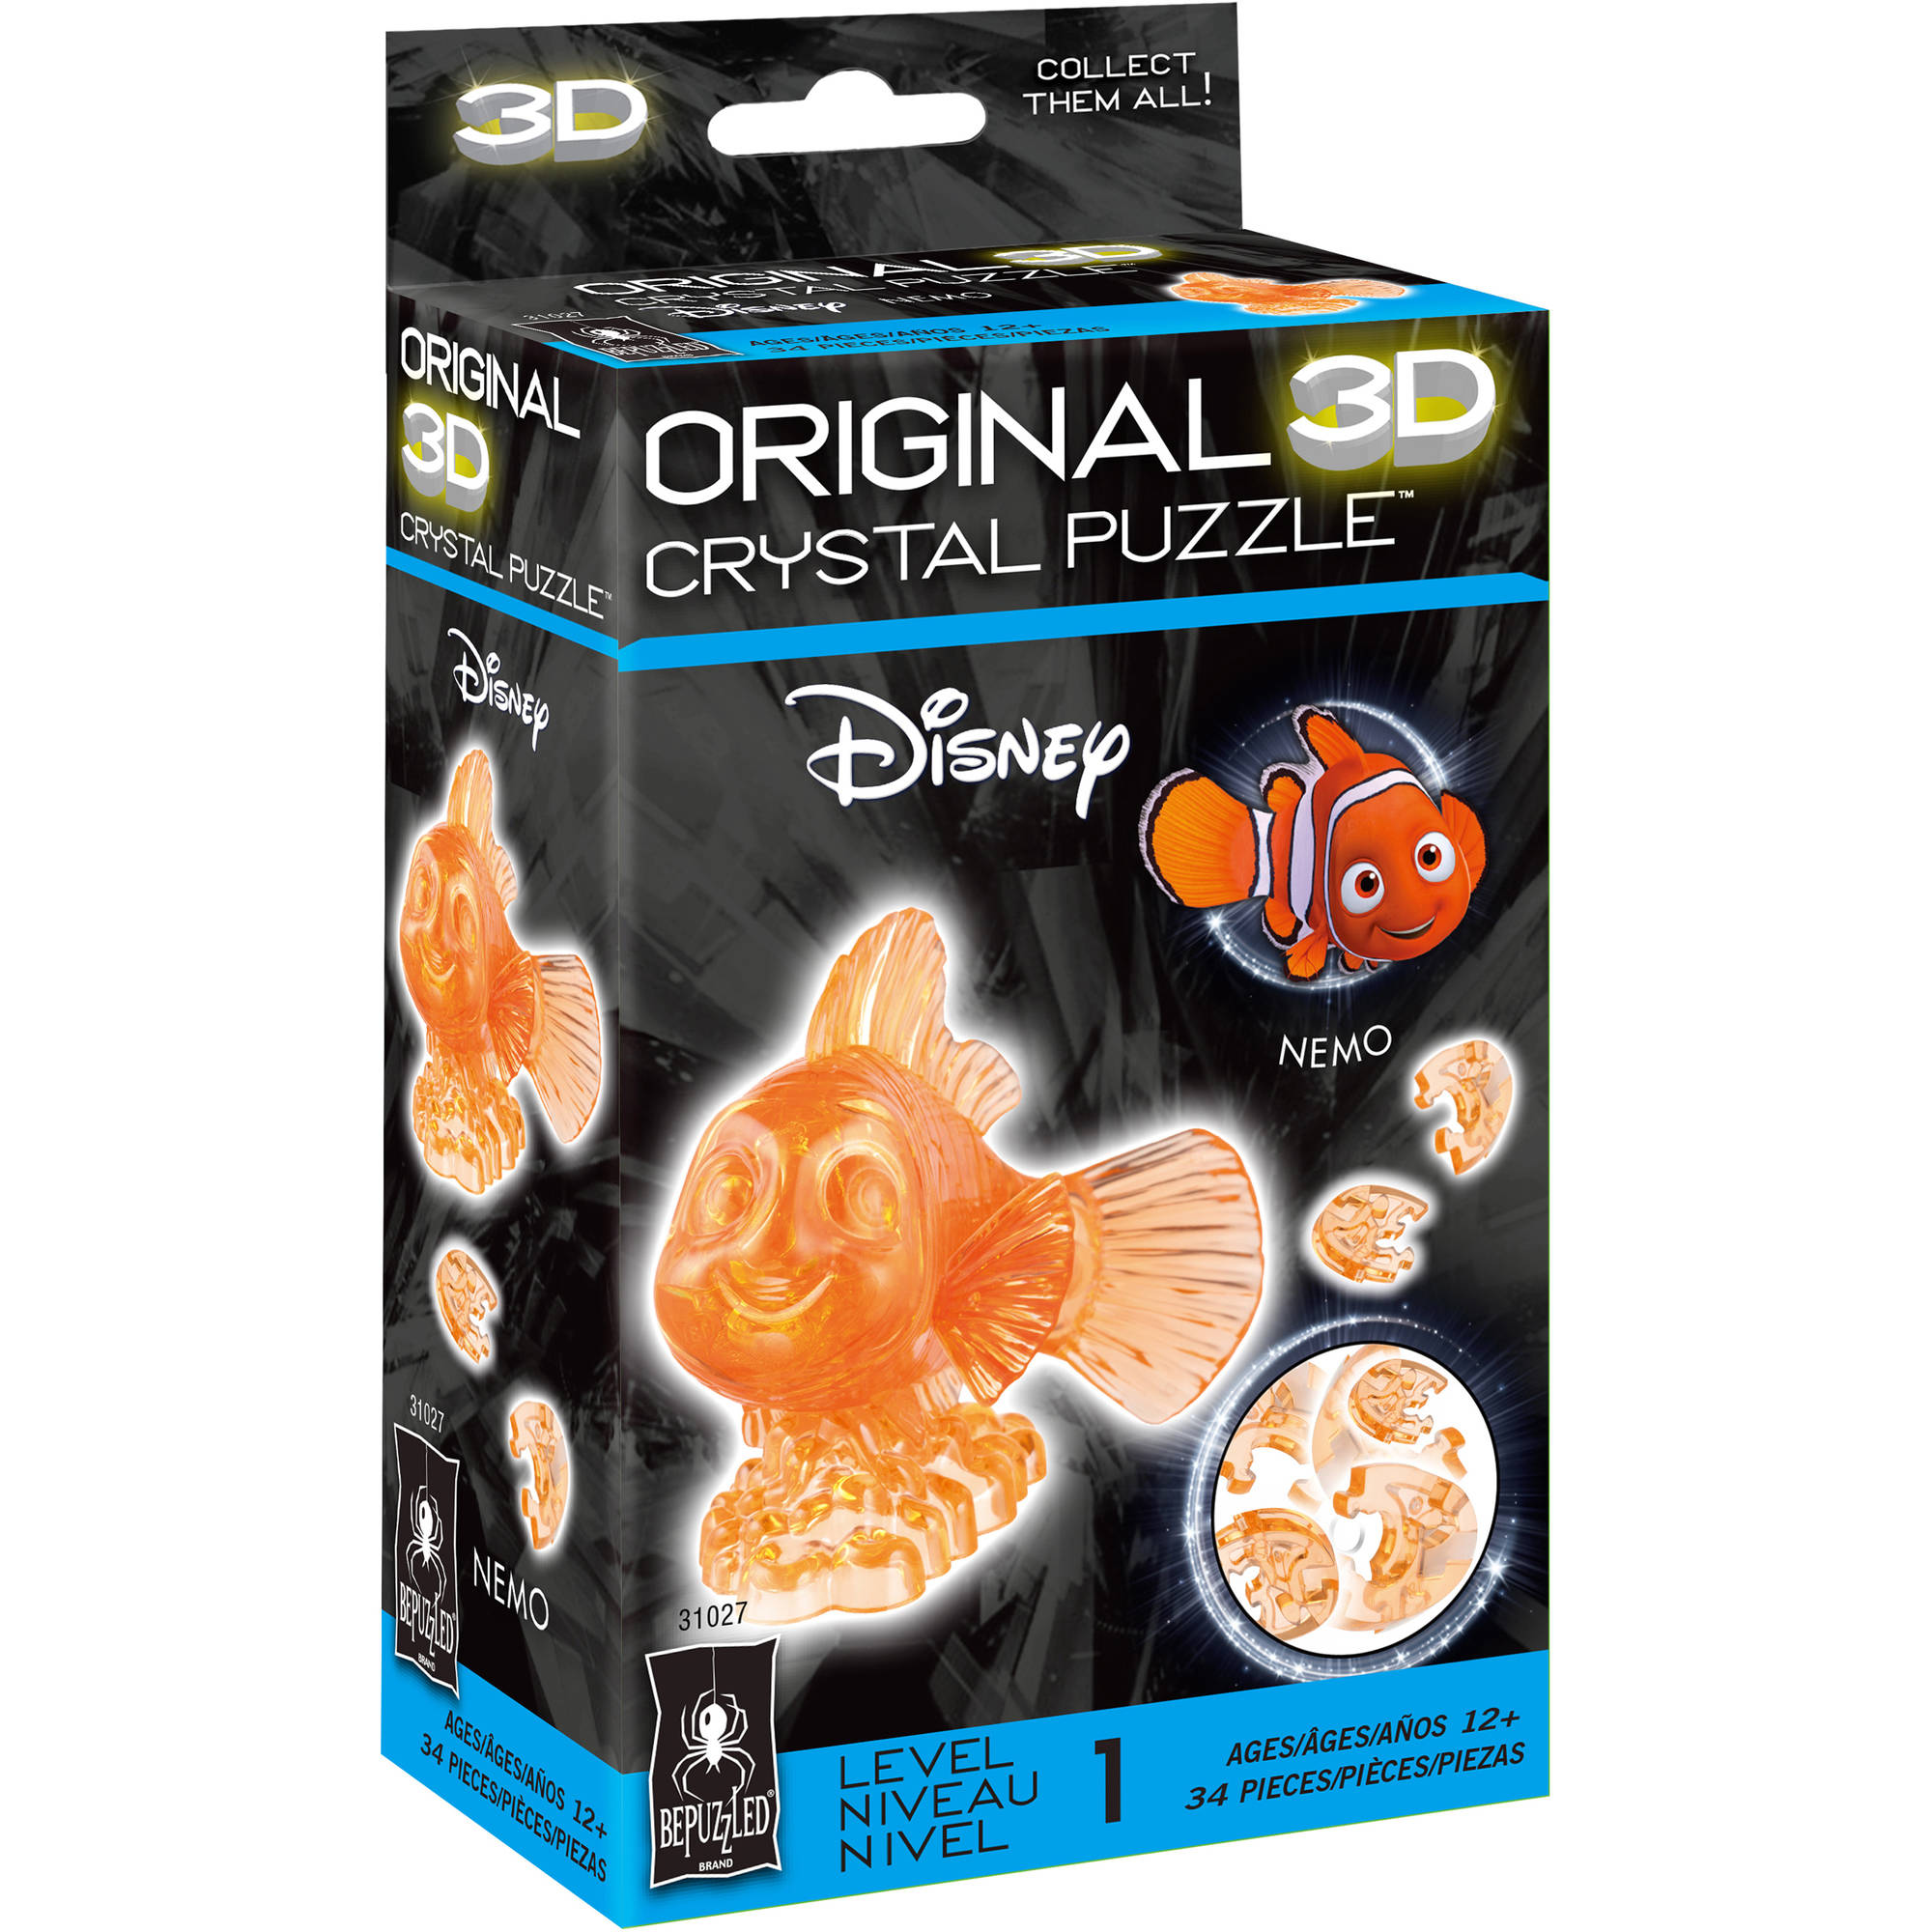 Original 3D Crystal Puzzle Nemo by BePuzzled